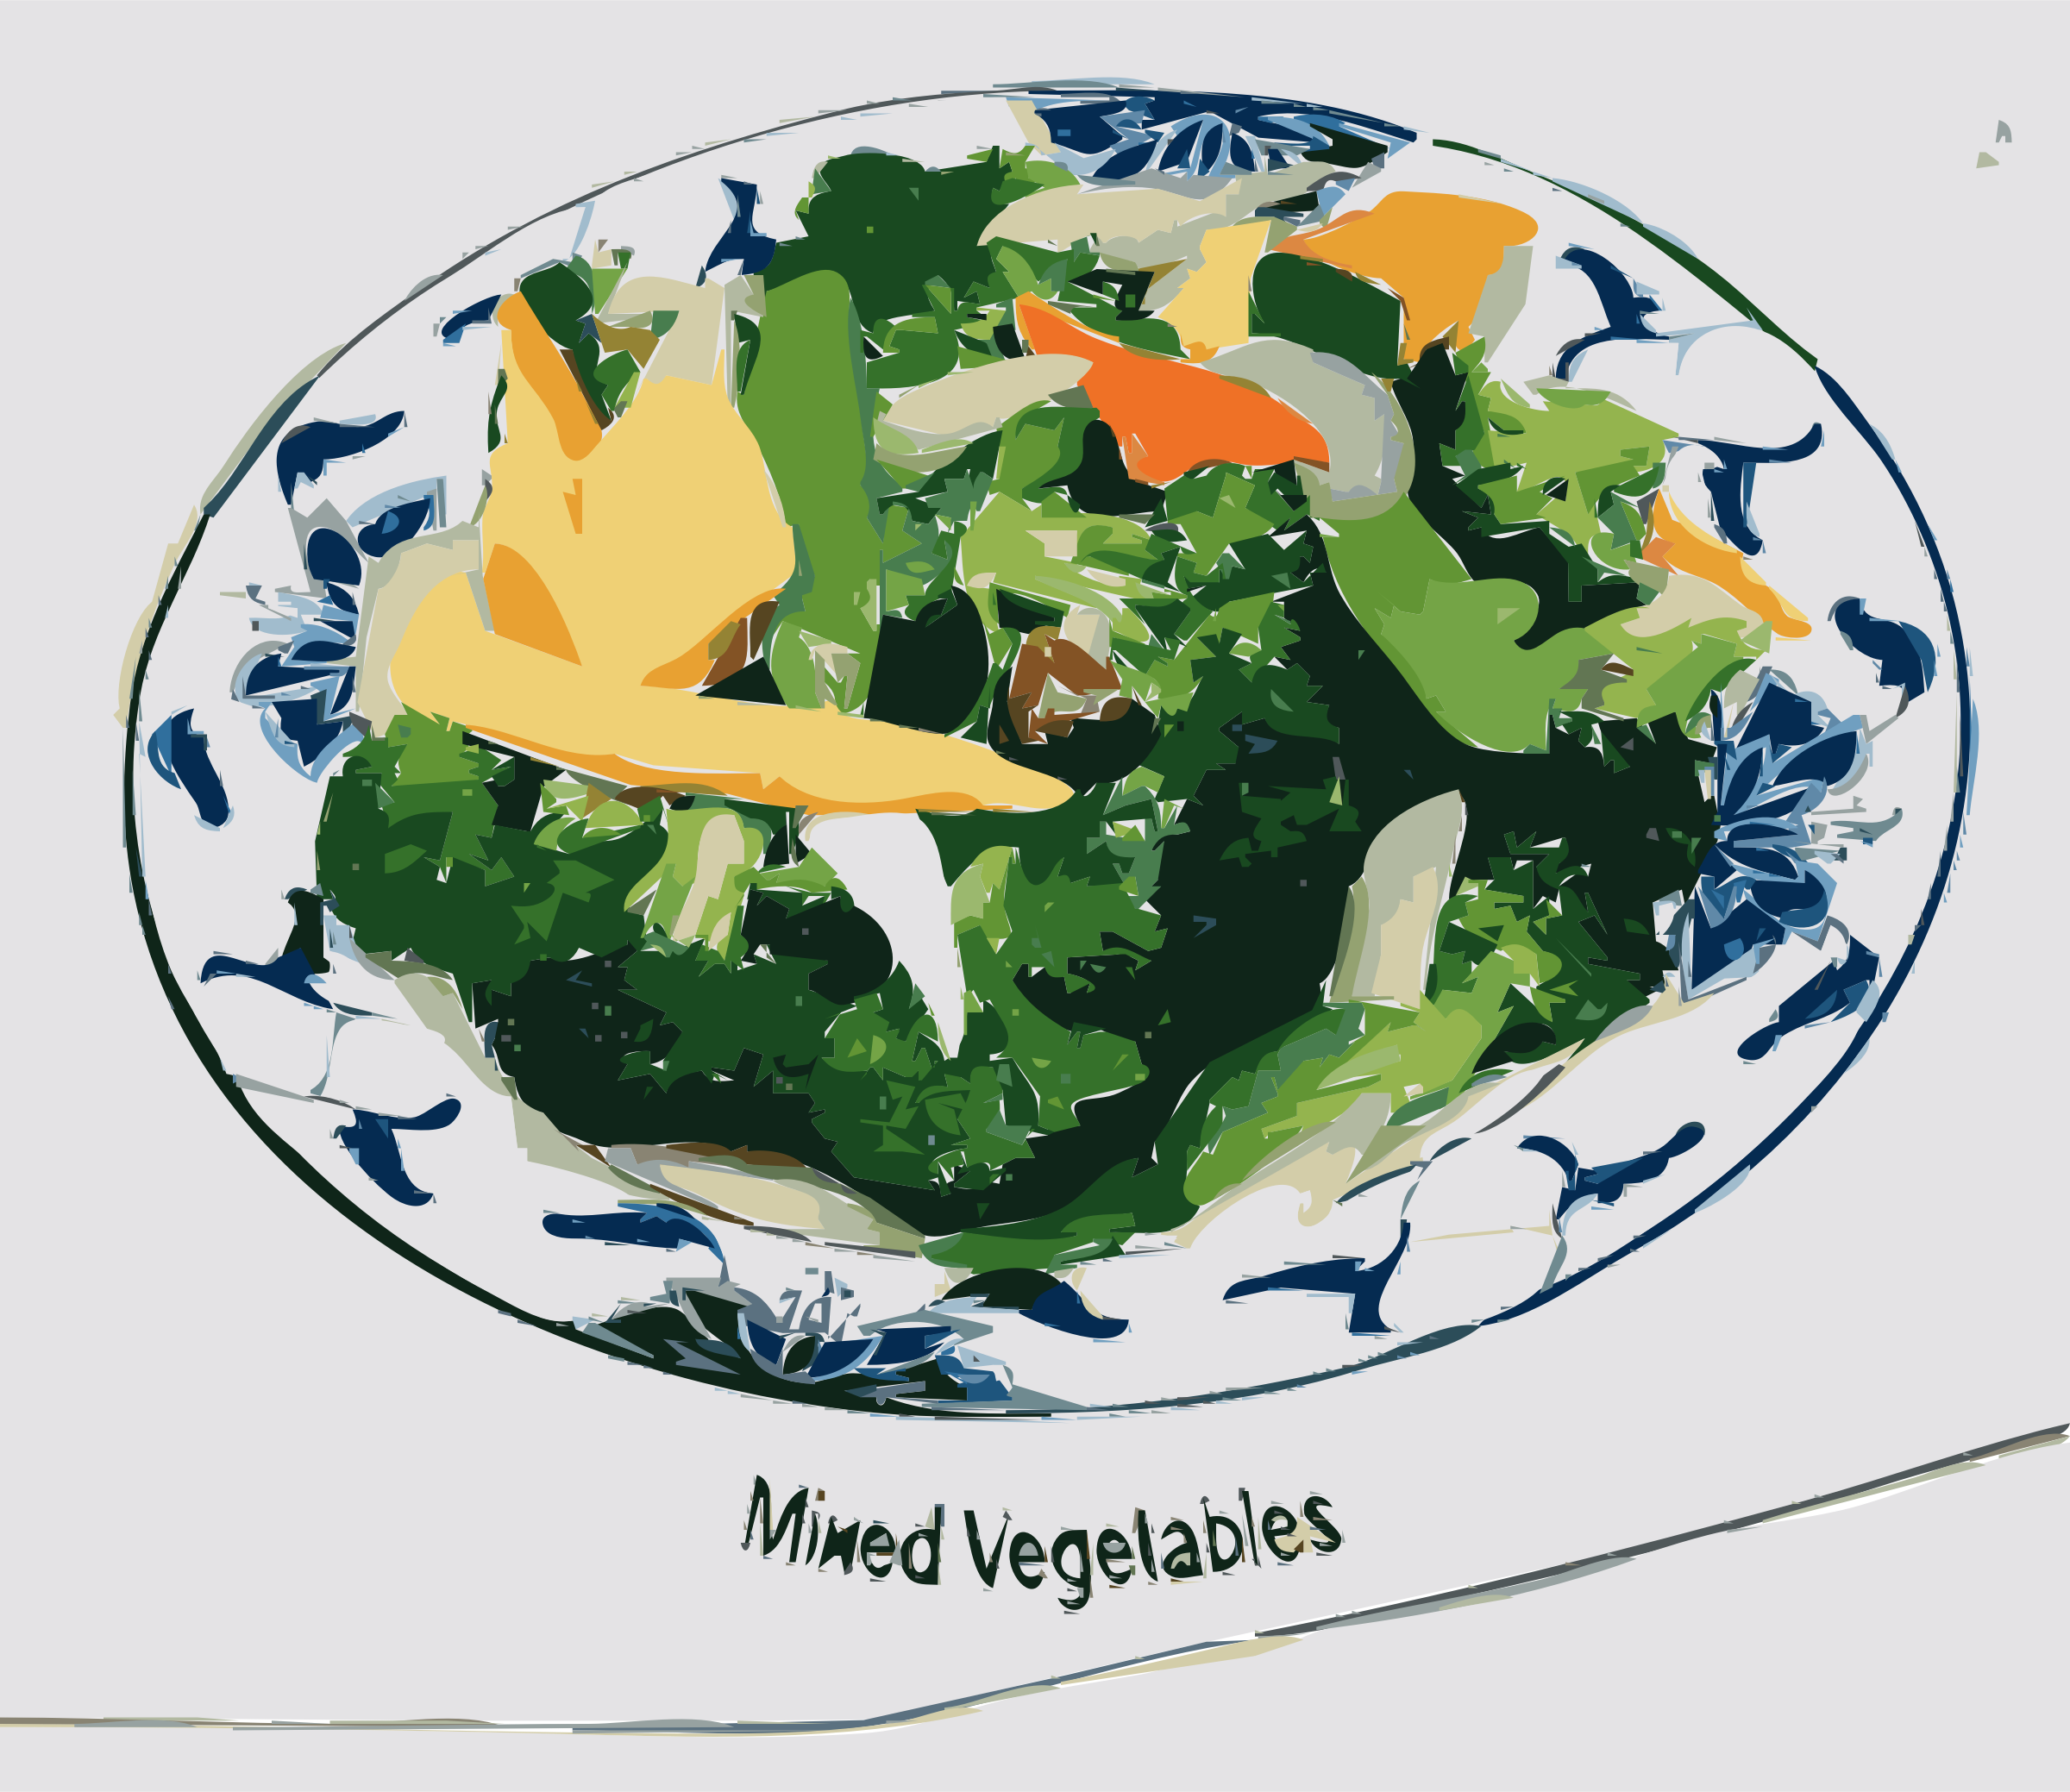 Mixed Vegetables by rejon